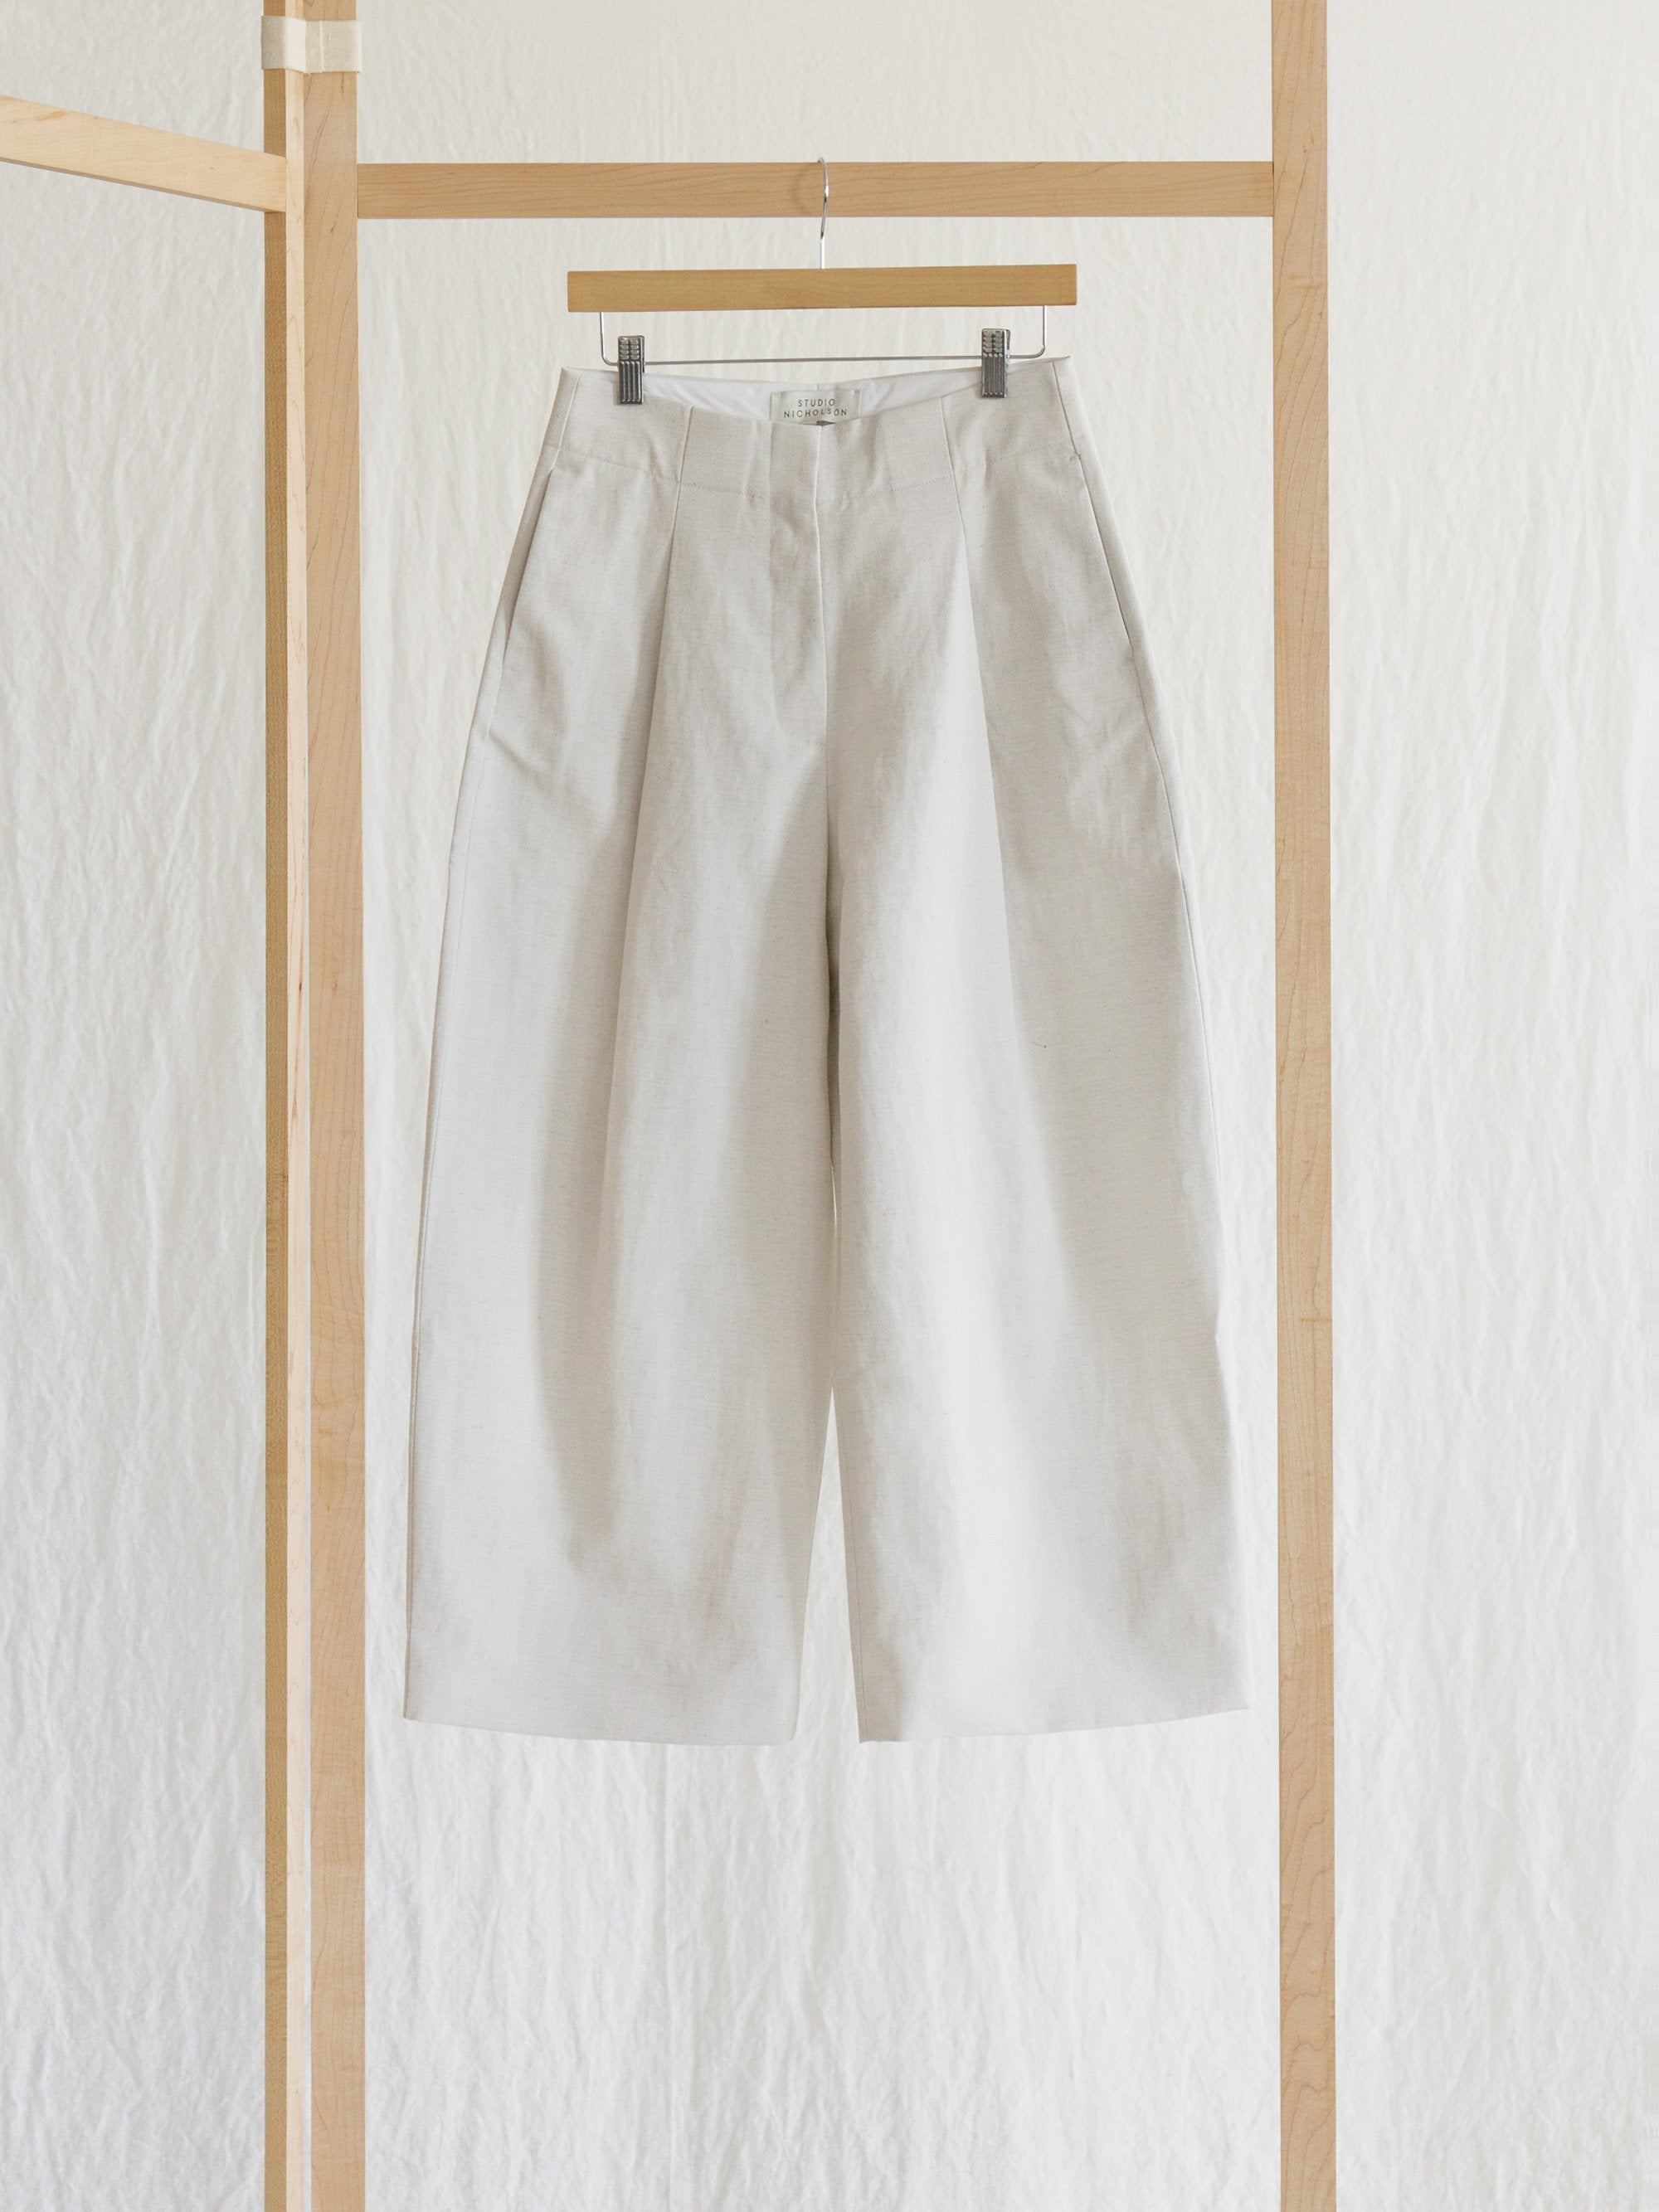 Namu Shop - Studio Nicholson Dordoni Volume Pleat Pants - Neutral